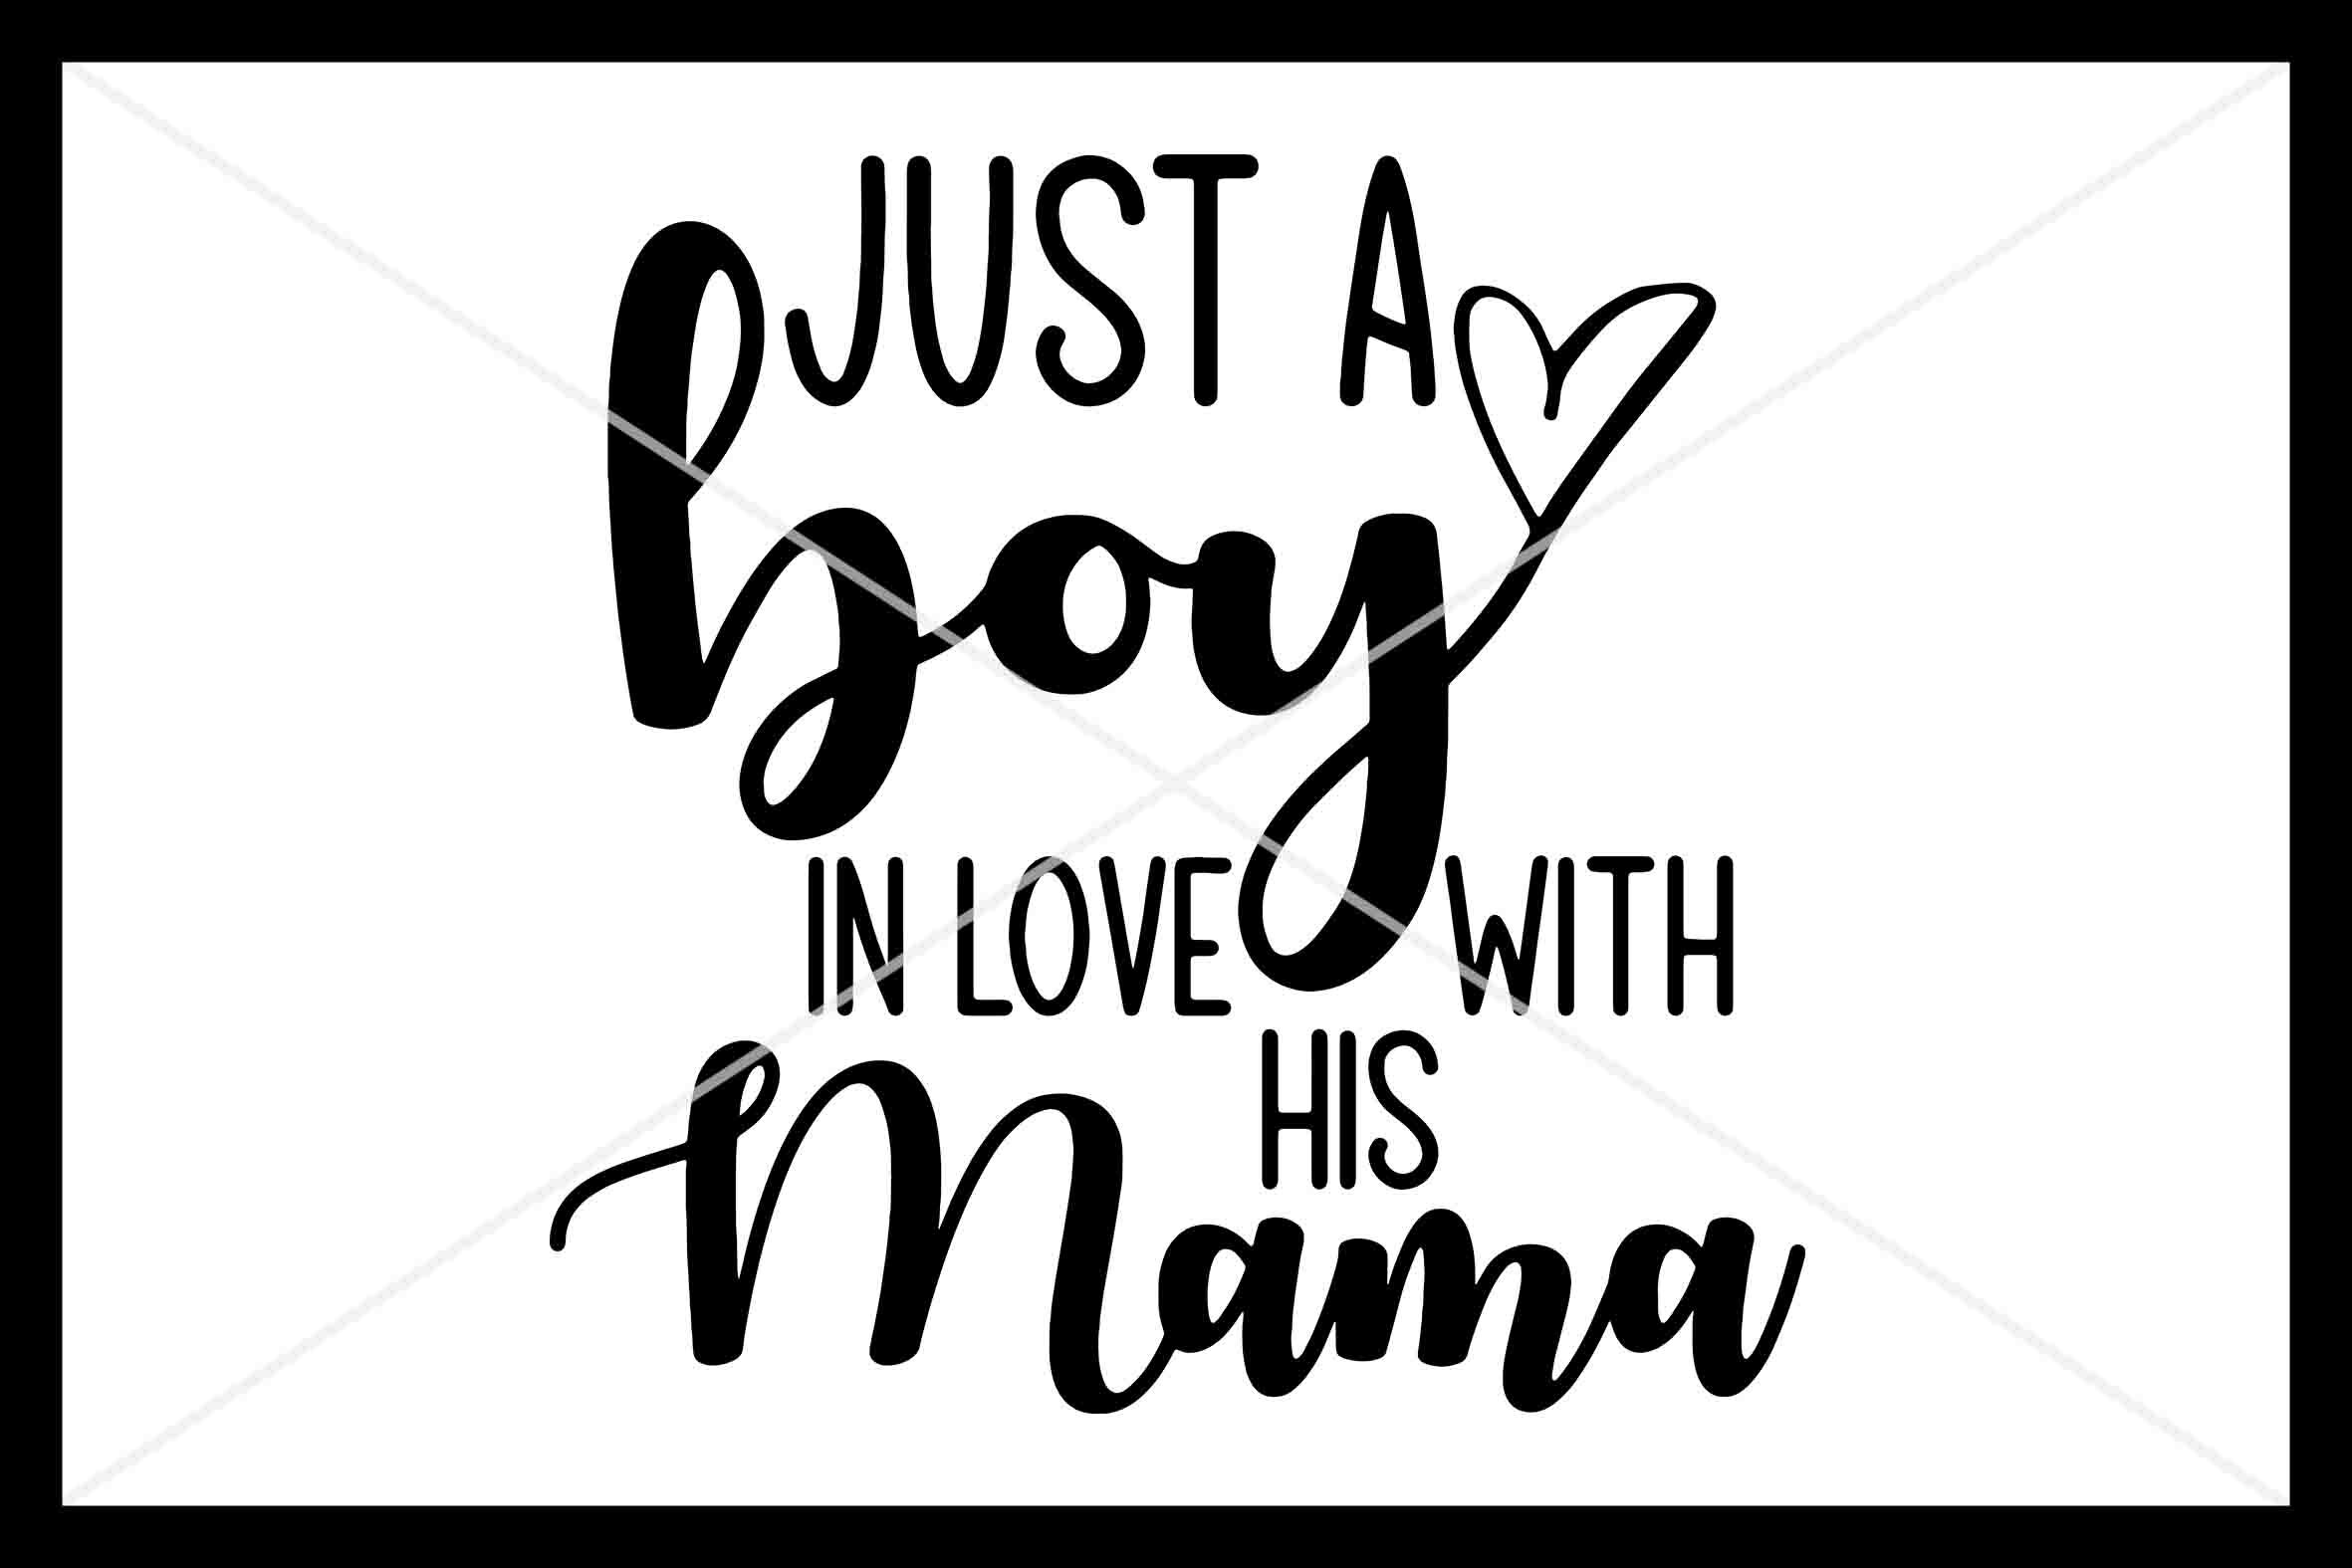 Just A Boy In Love With His Mama Svg Instant Download Cricut By